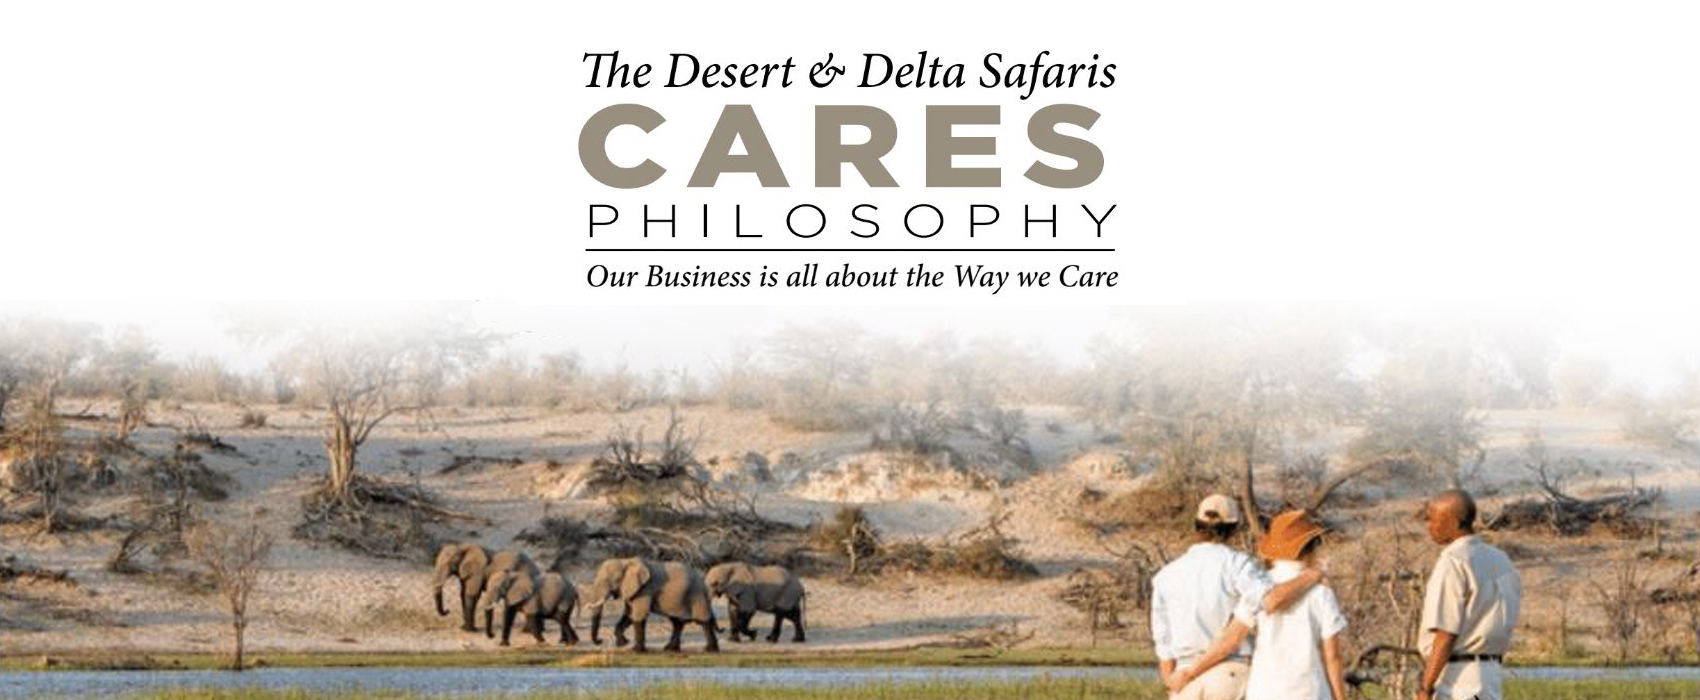 Desert_Delta_CARES_Philosophy